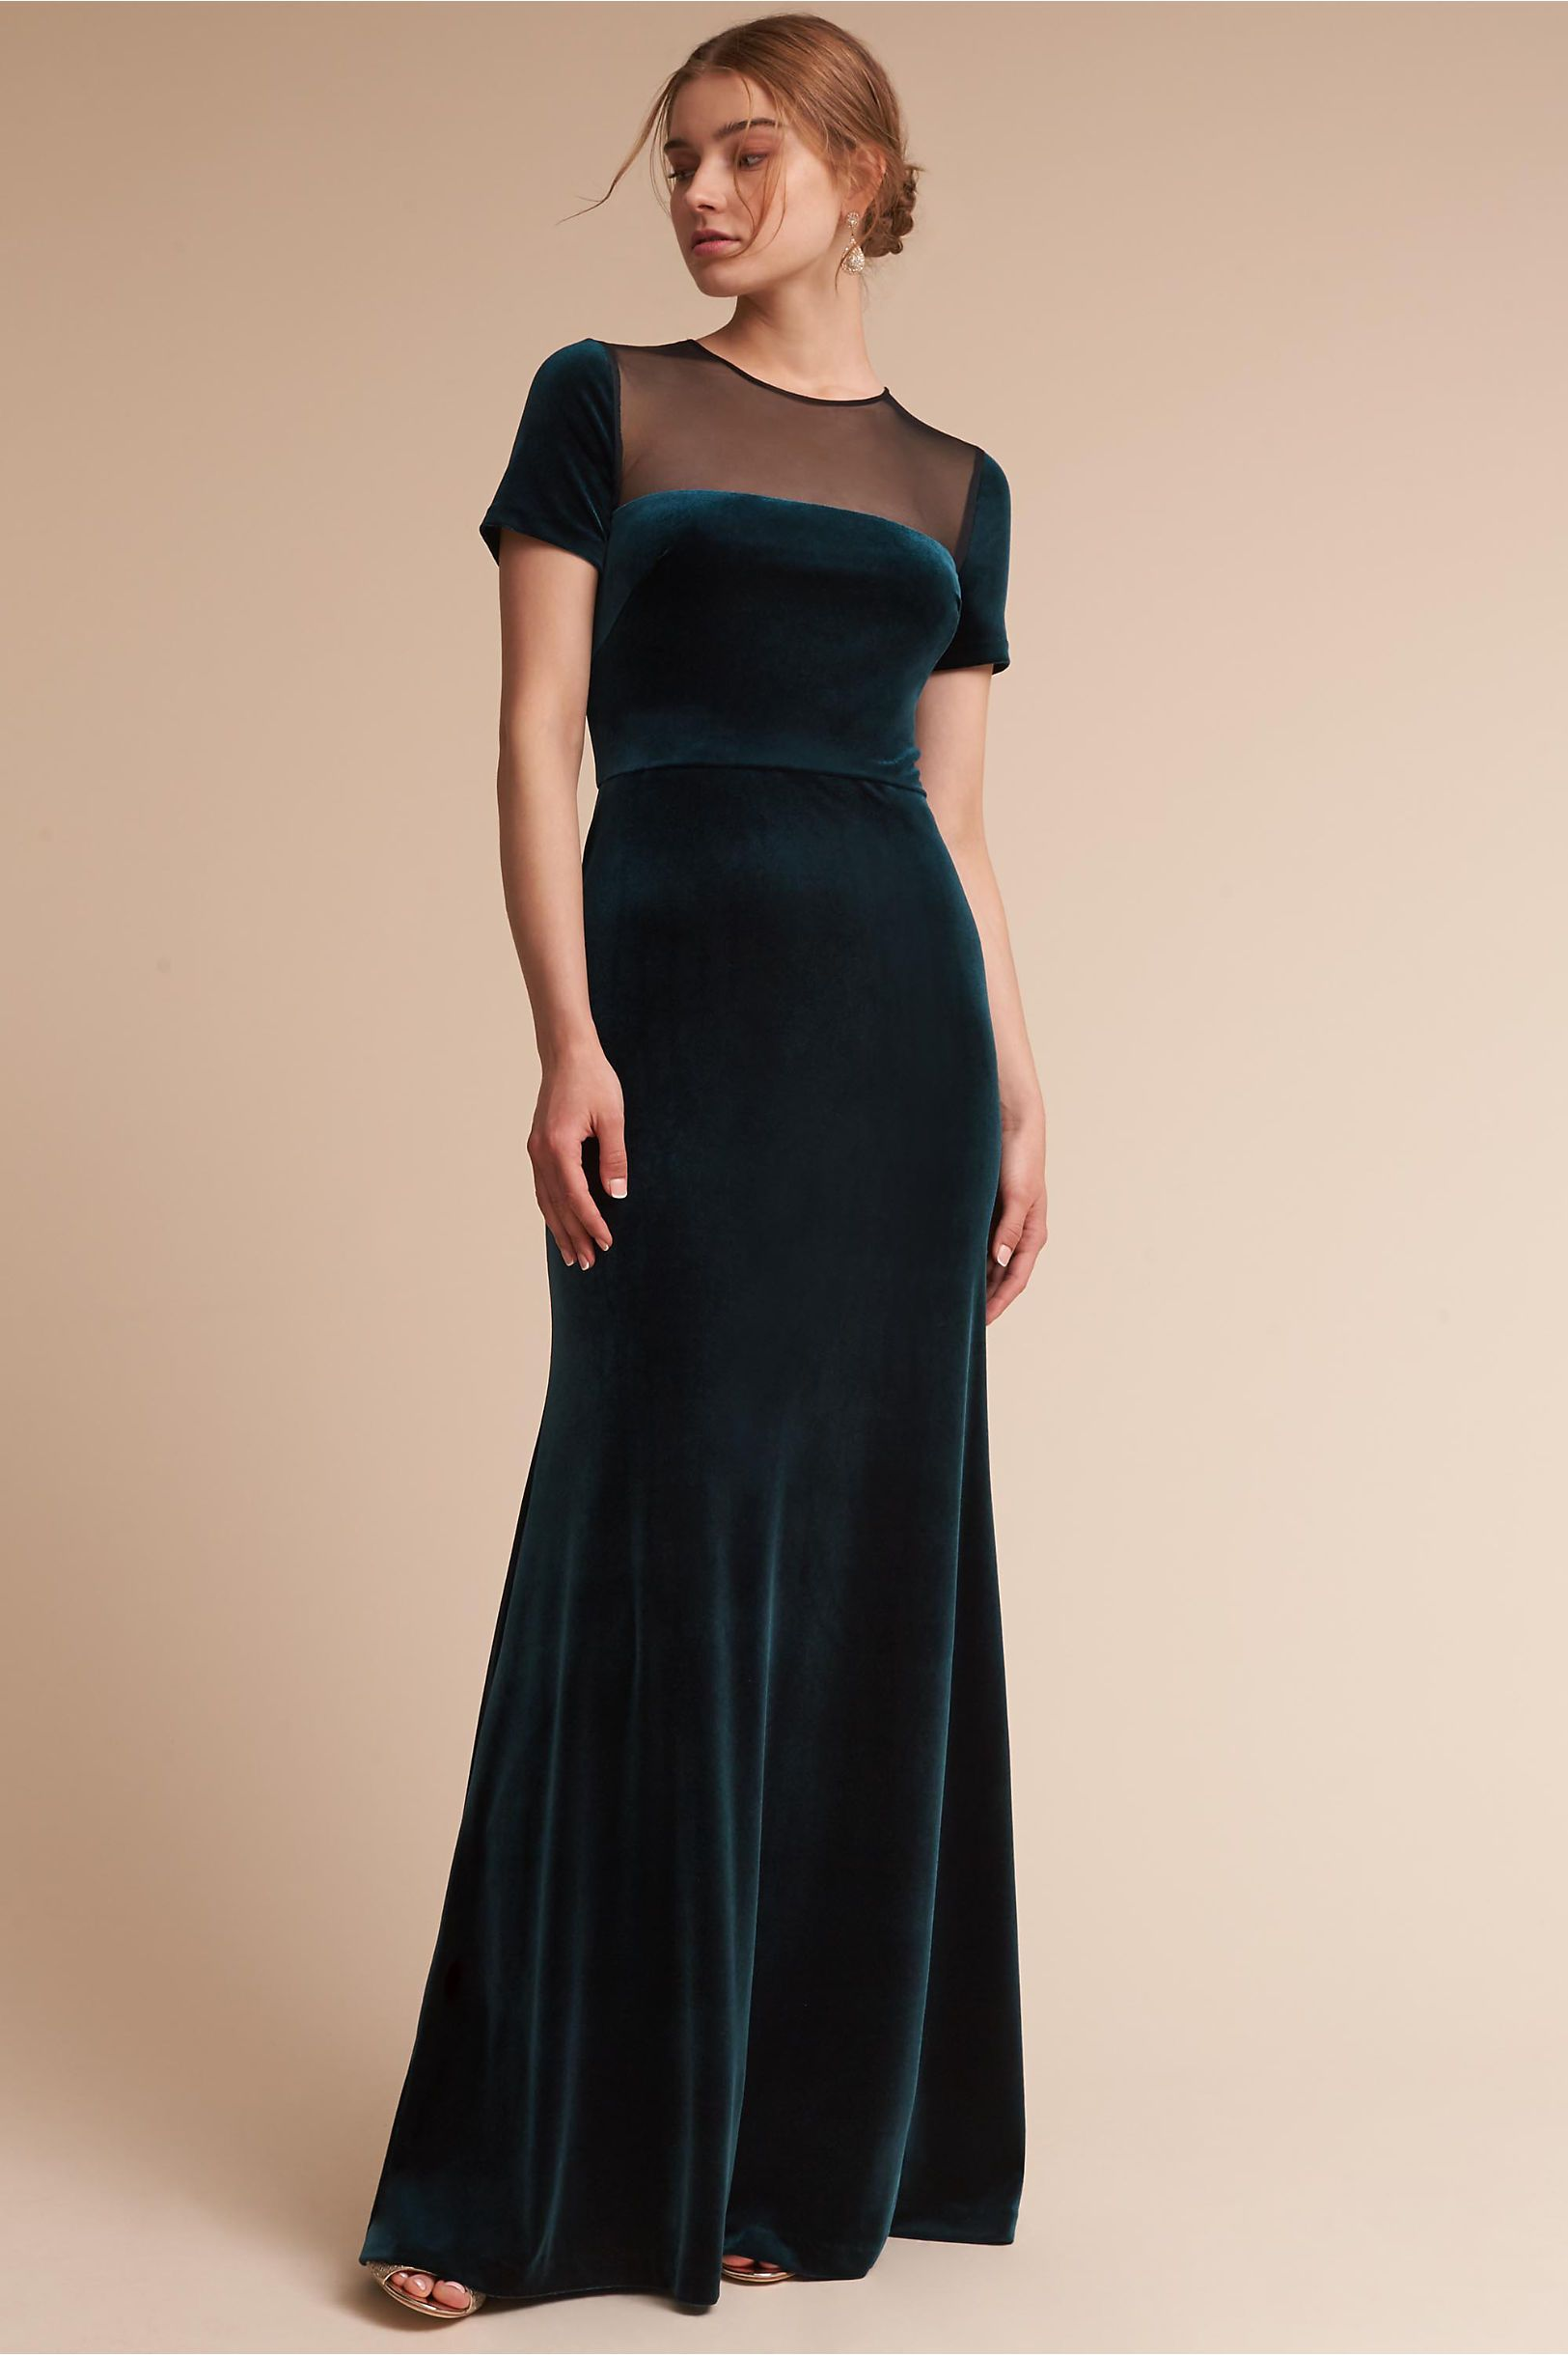 Bhldn Pine Green Iryna Dress In Bridal Party Bhldn Mother Of The Bride Dresses Long Ball Dresses Ball Gown Wedding Dress [ 2440 x 1625 Pixel ]